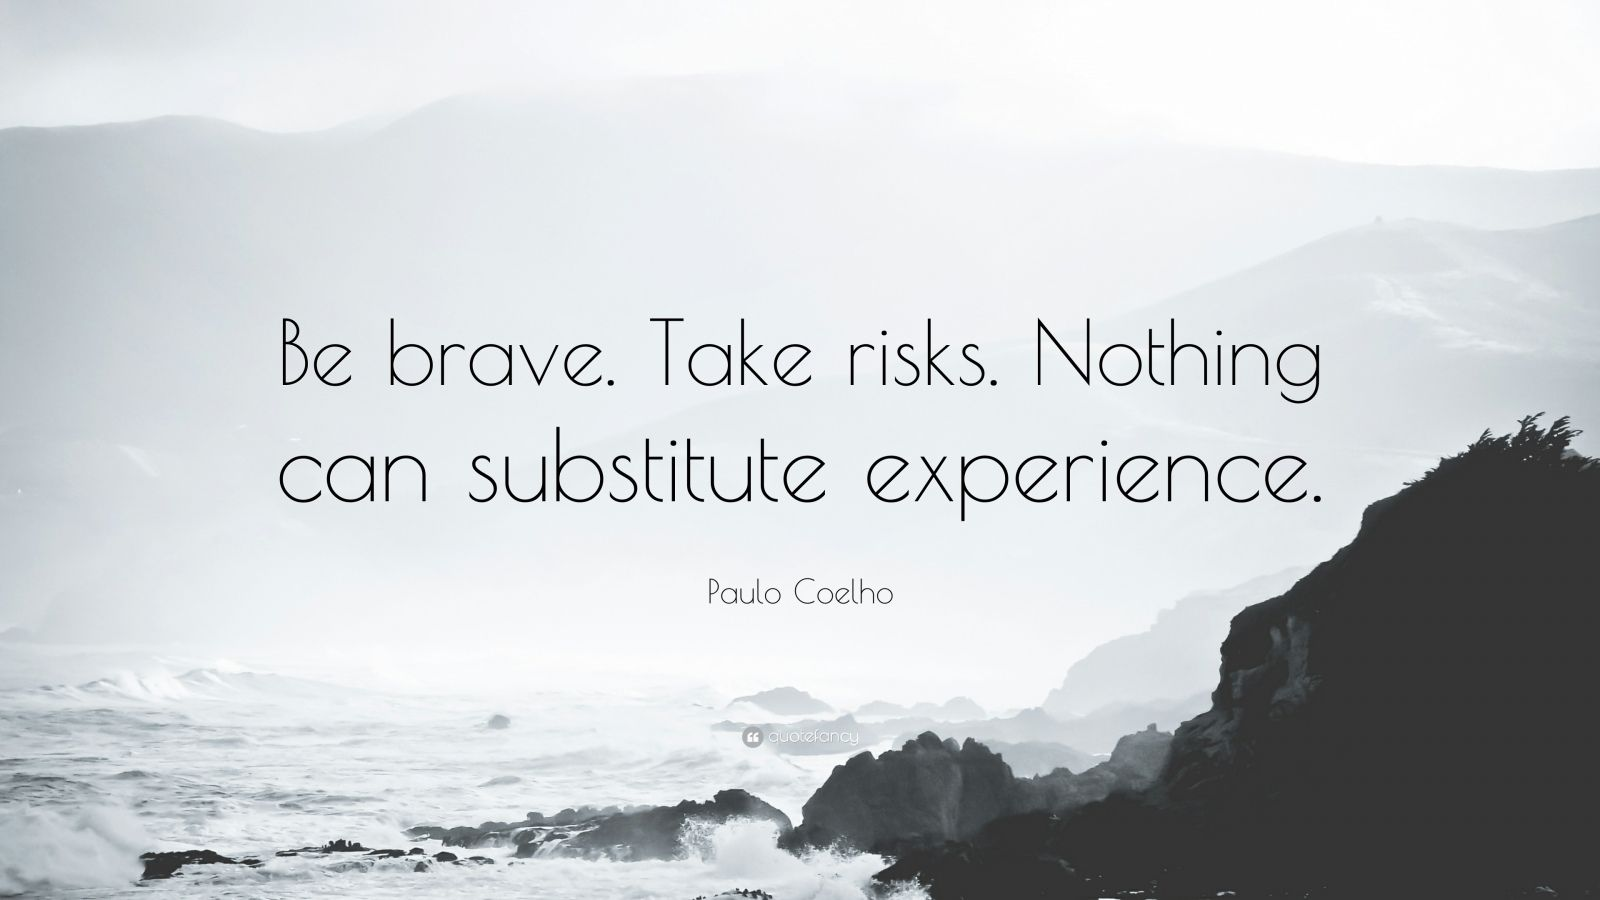 Bon Courage Quotes: U201cBe Brave. Take Risks. Nothing Can Substitute Experience.u201d